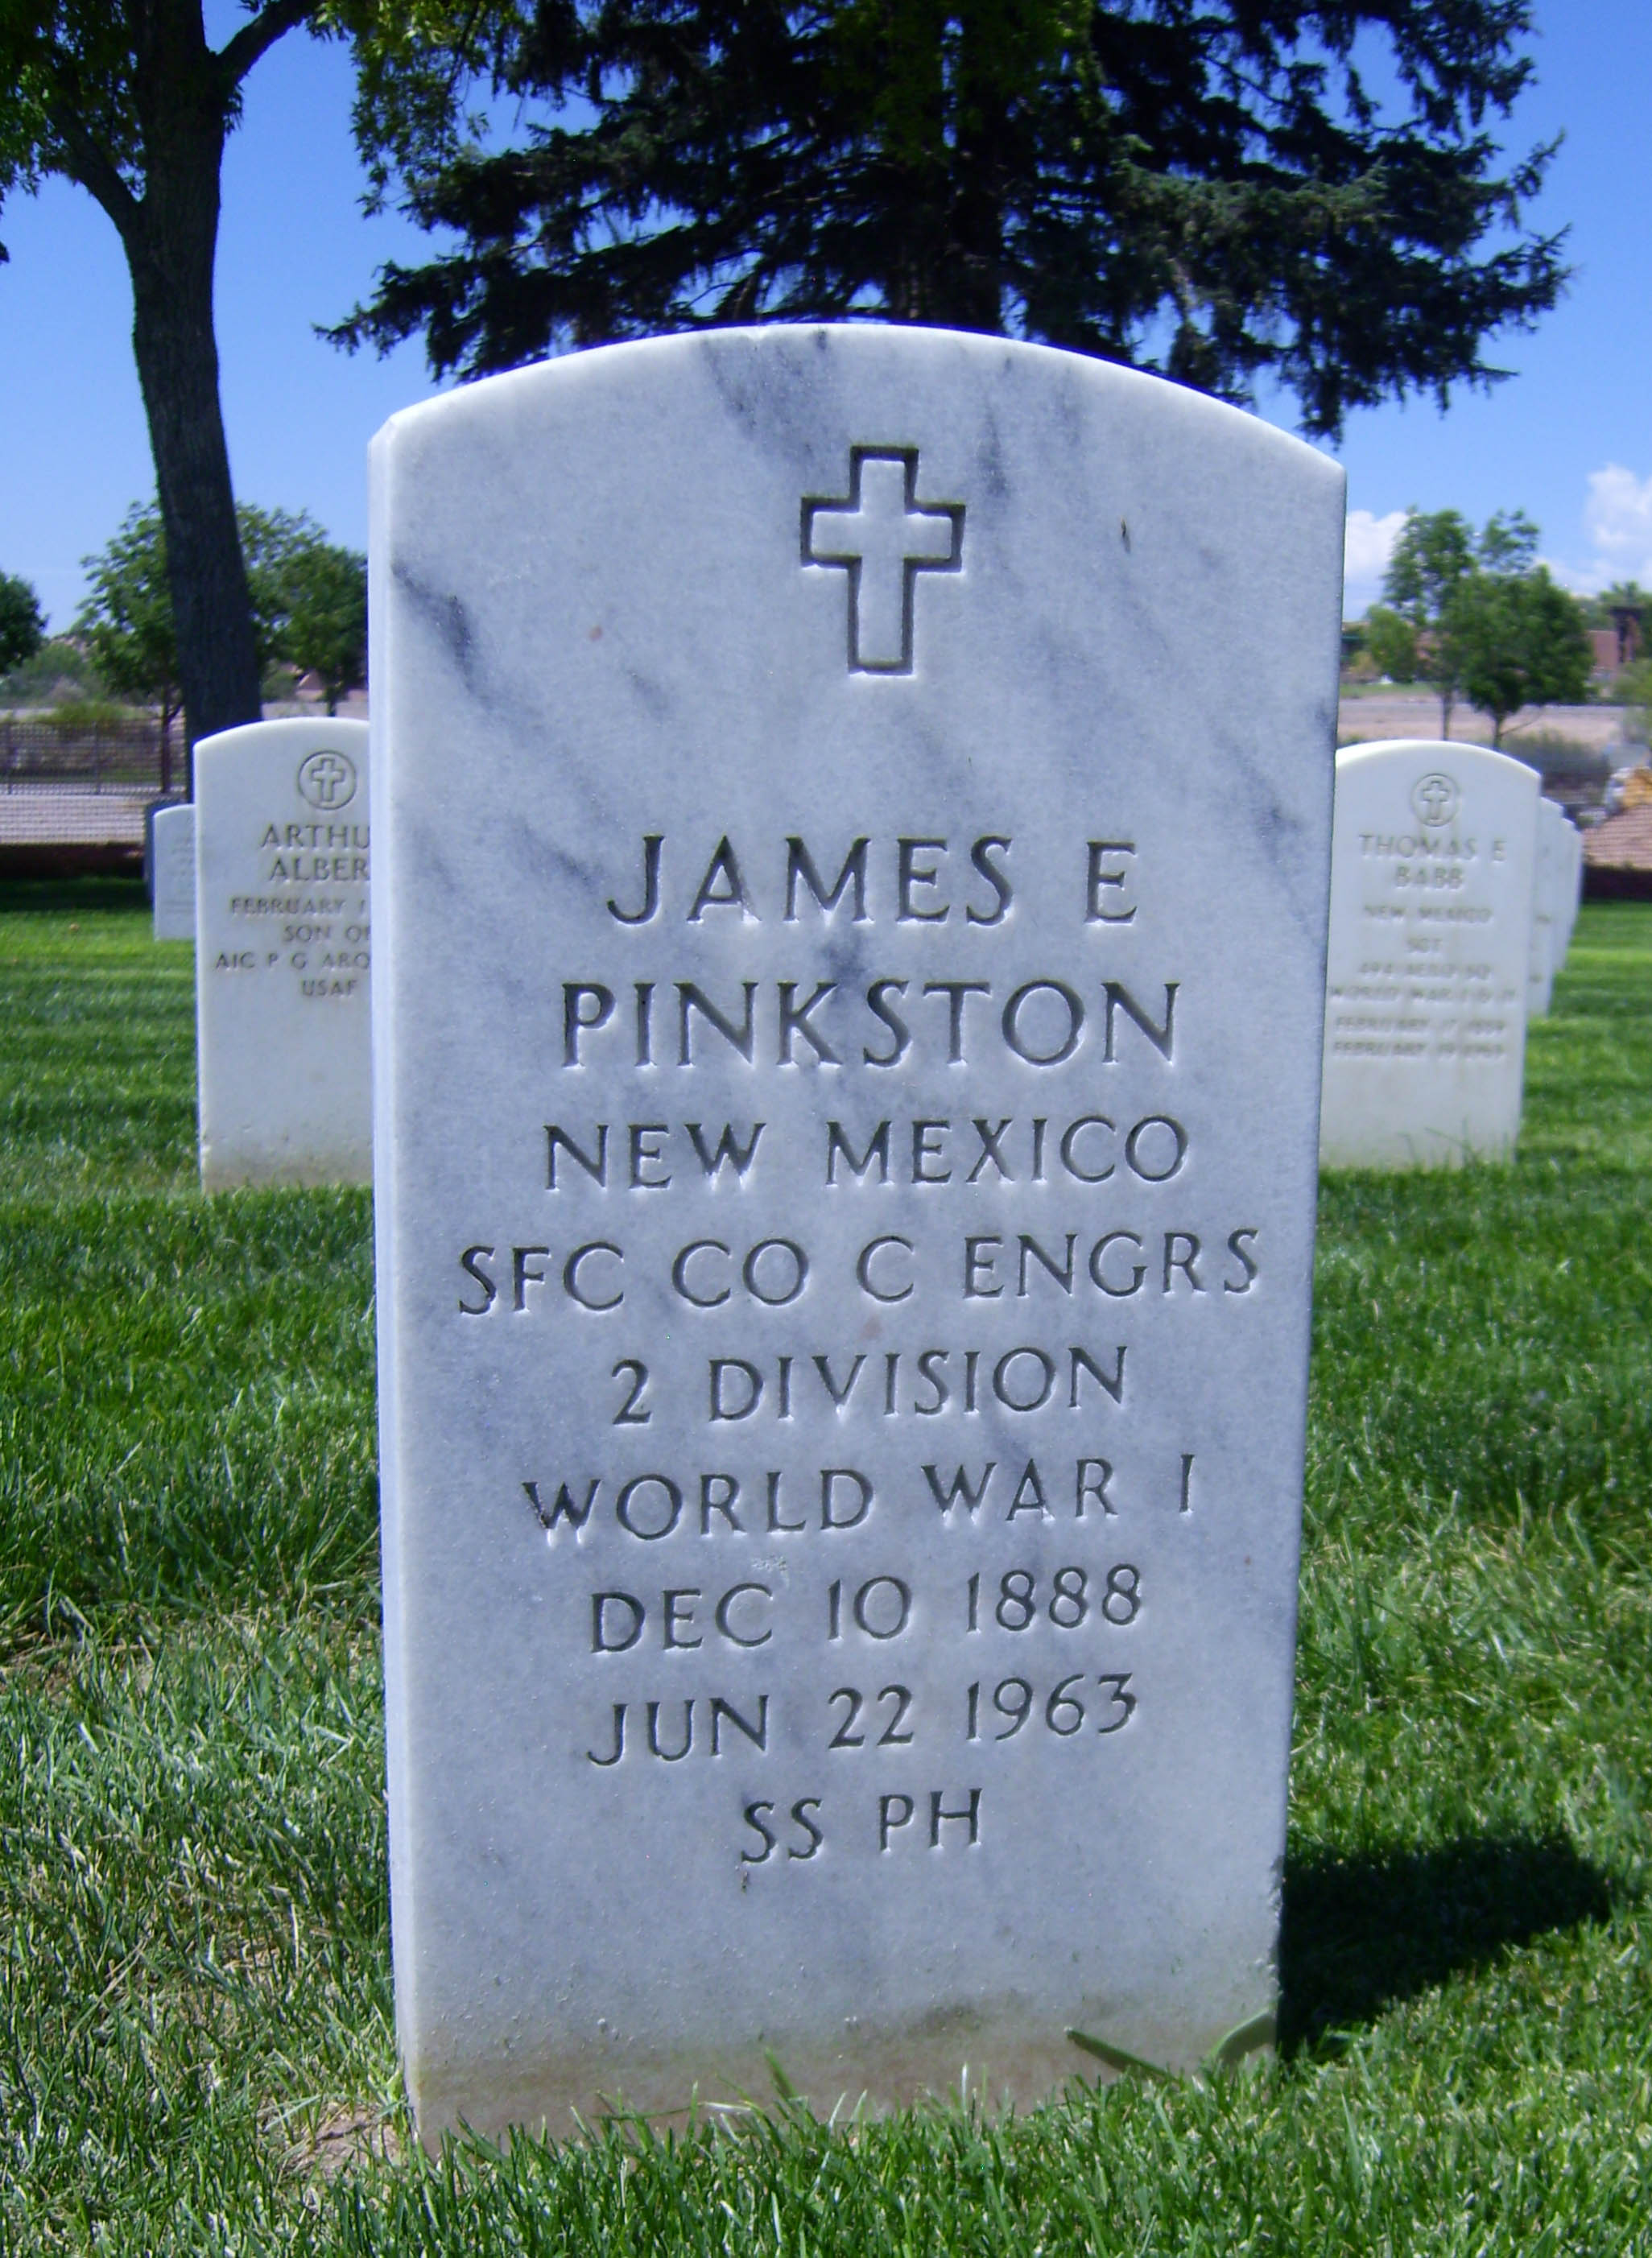 Grave of James E. Pinkston in New Mexico